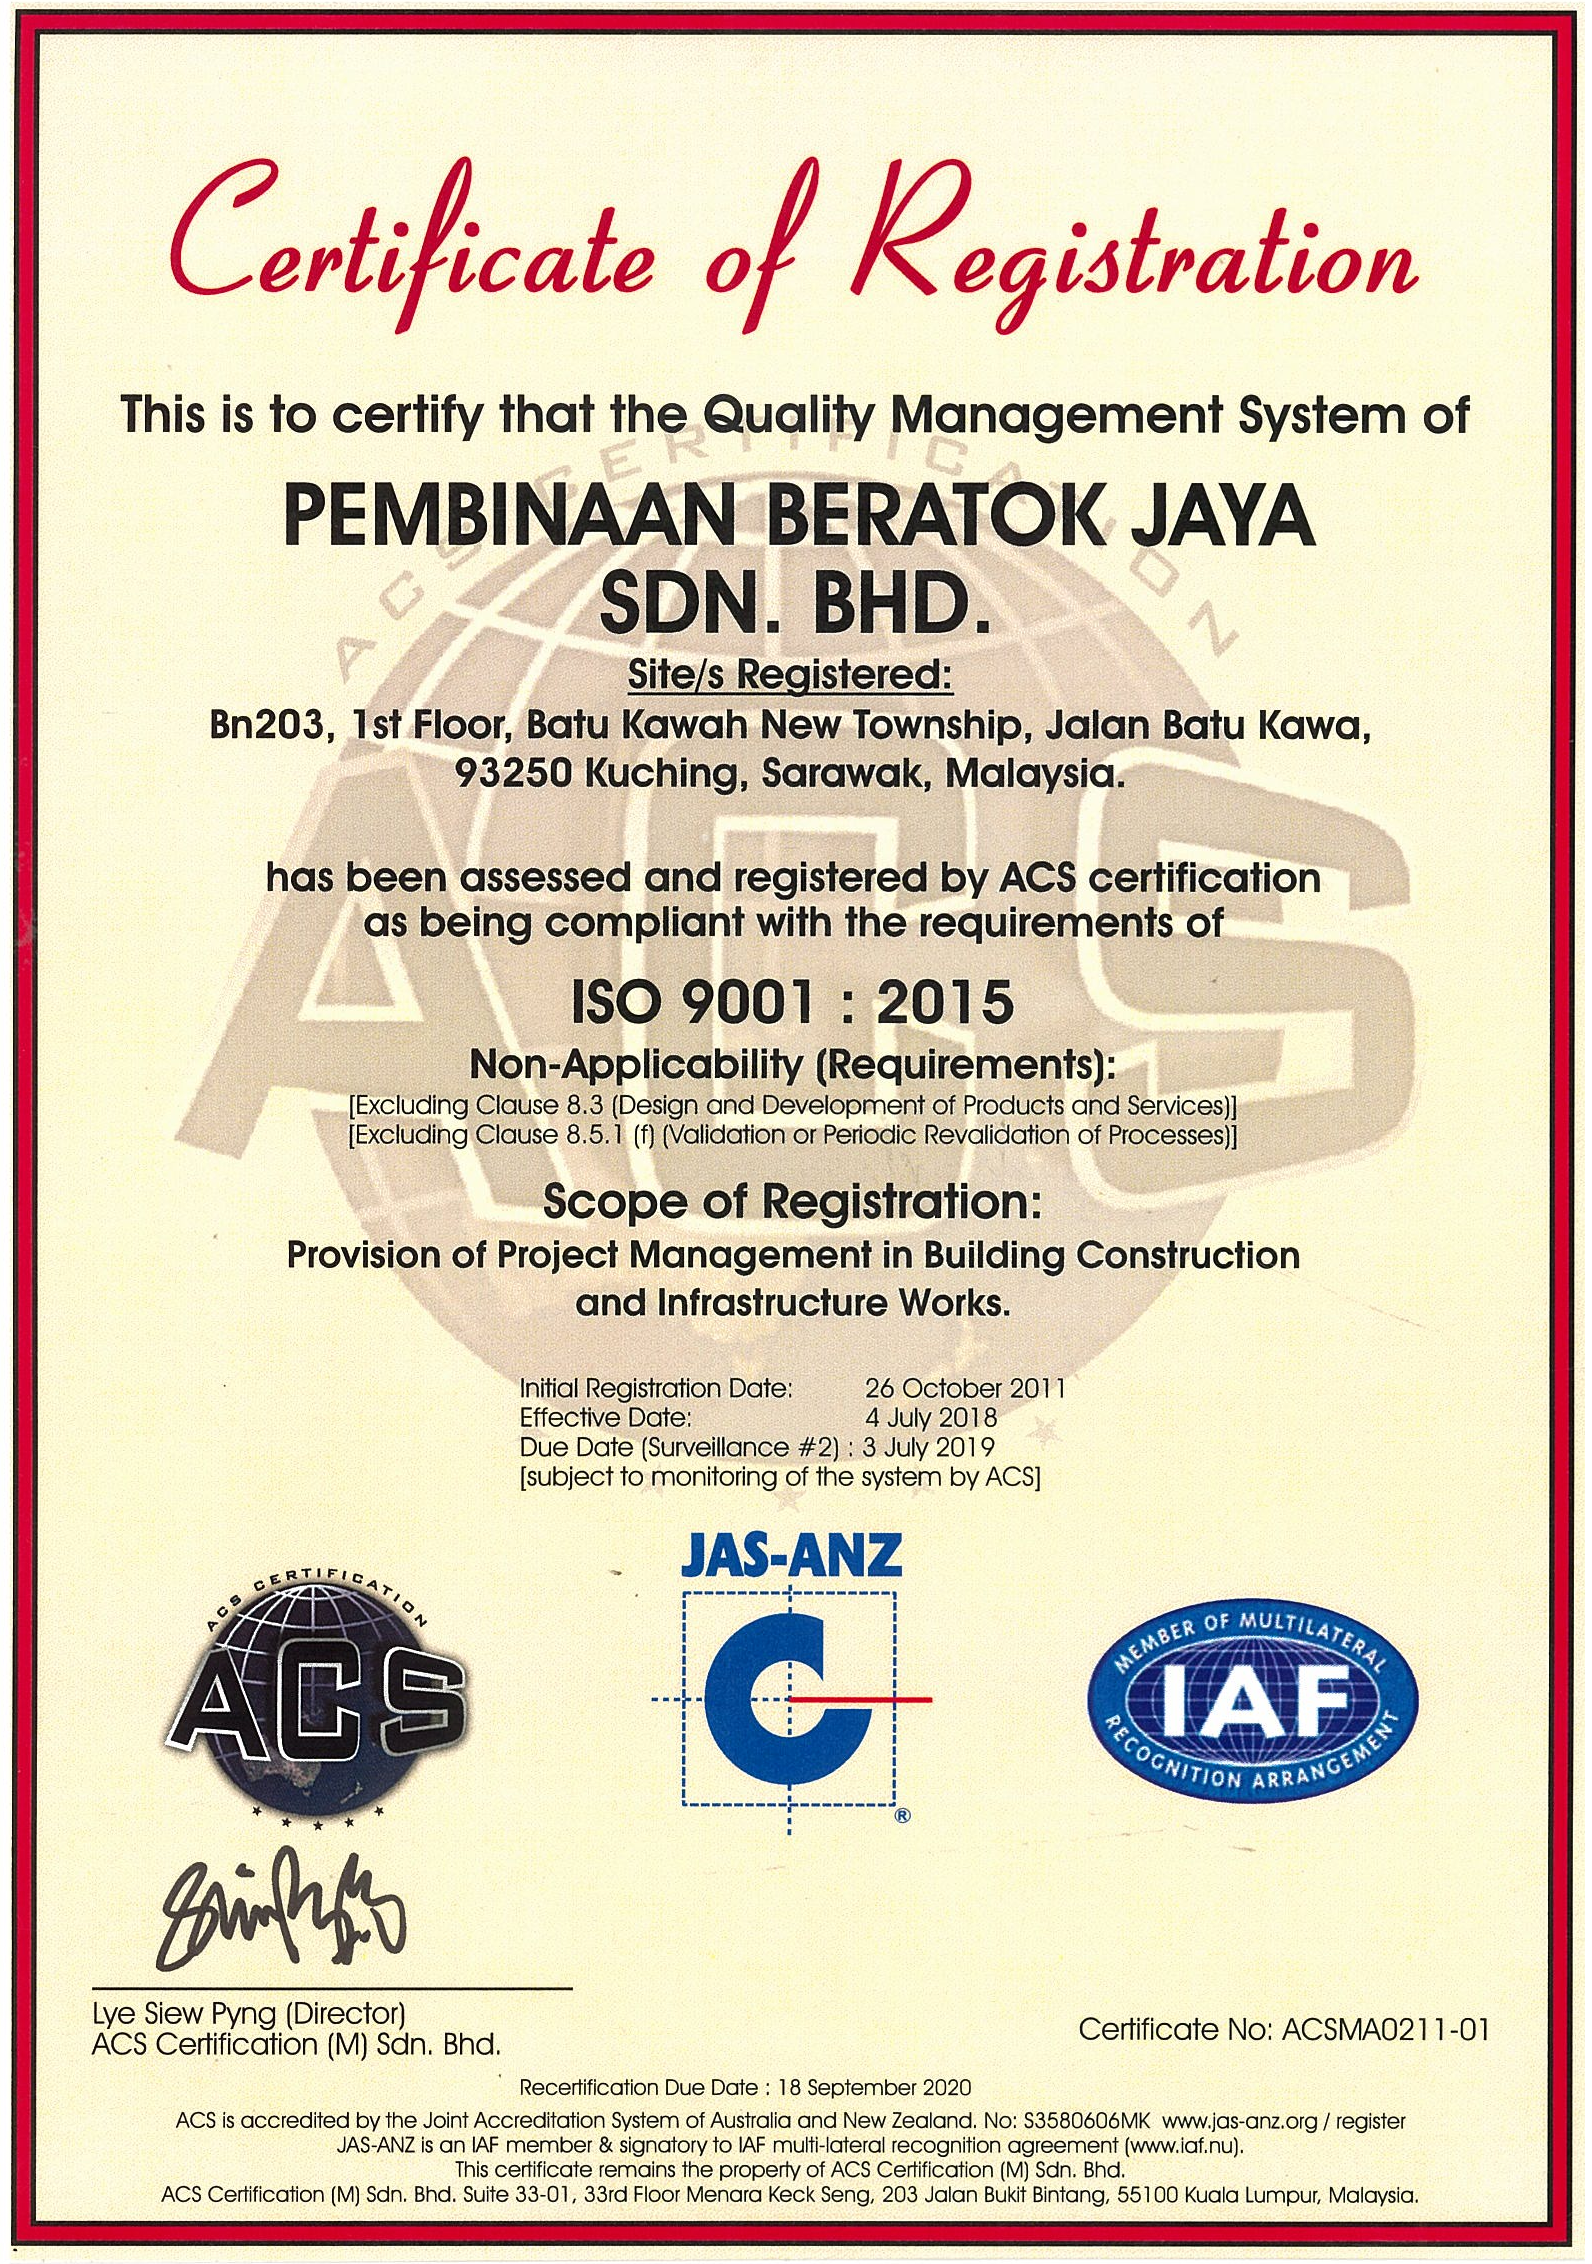 Certificate of Registration ISO 9001:2015